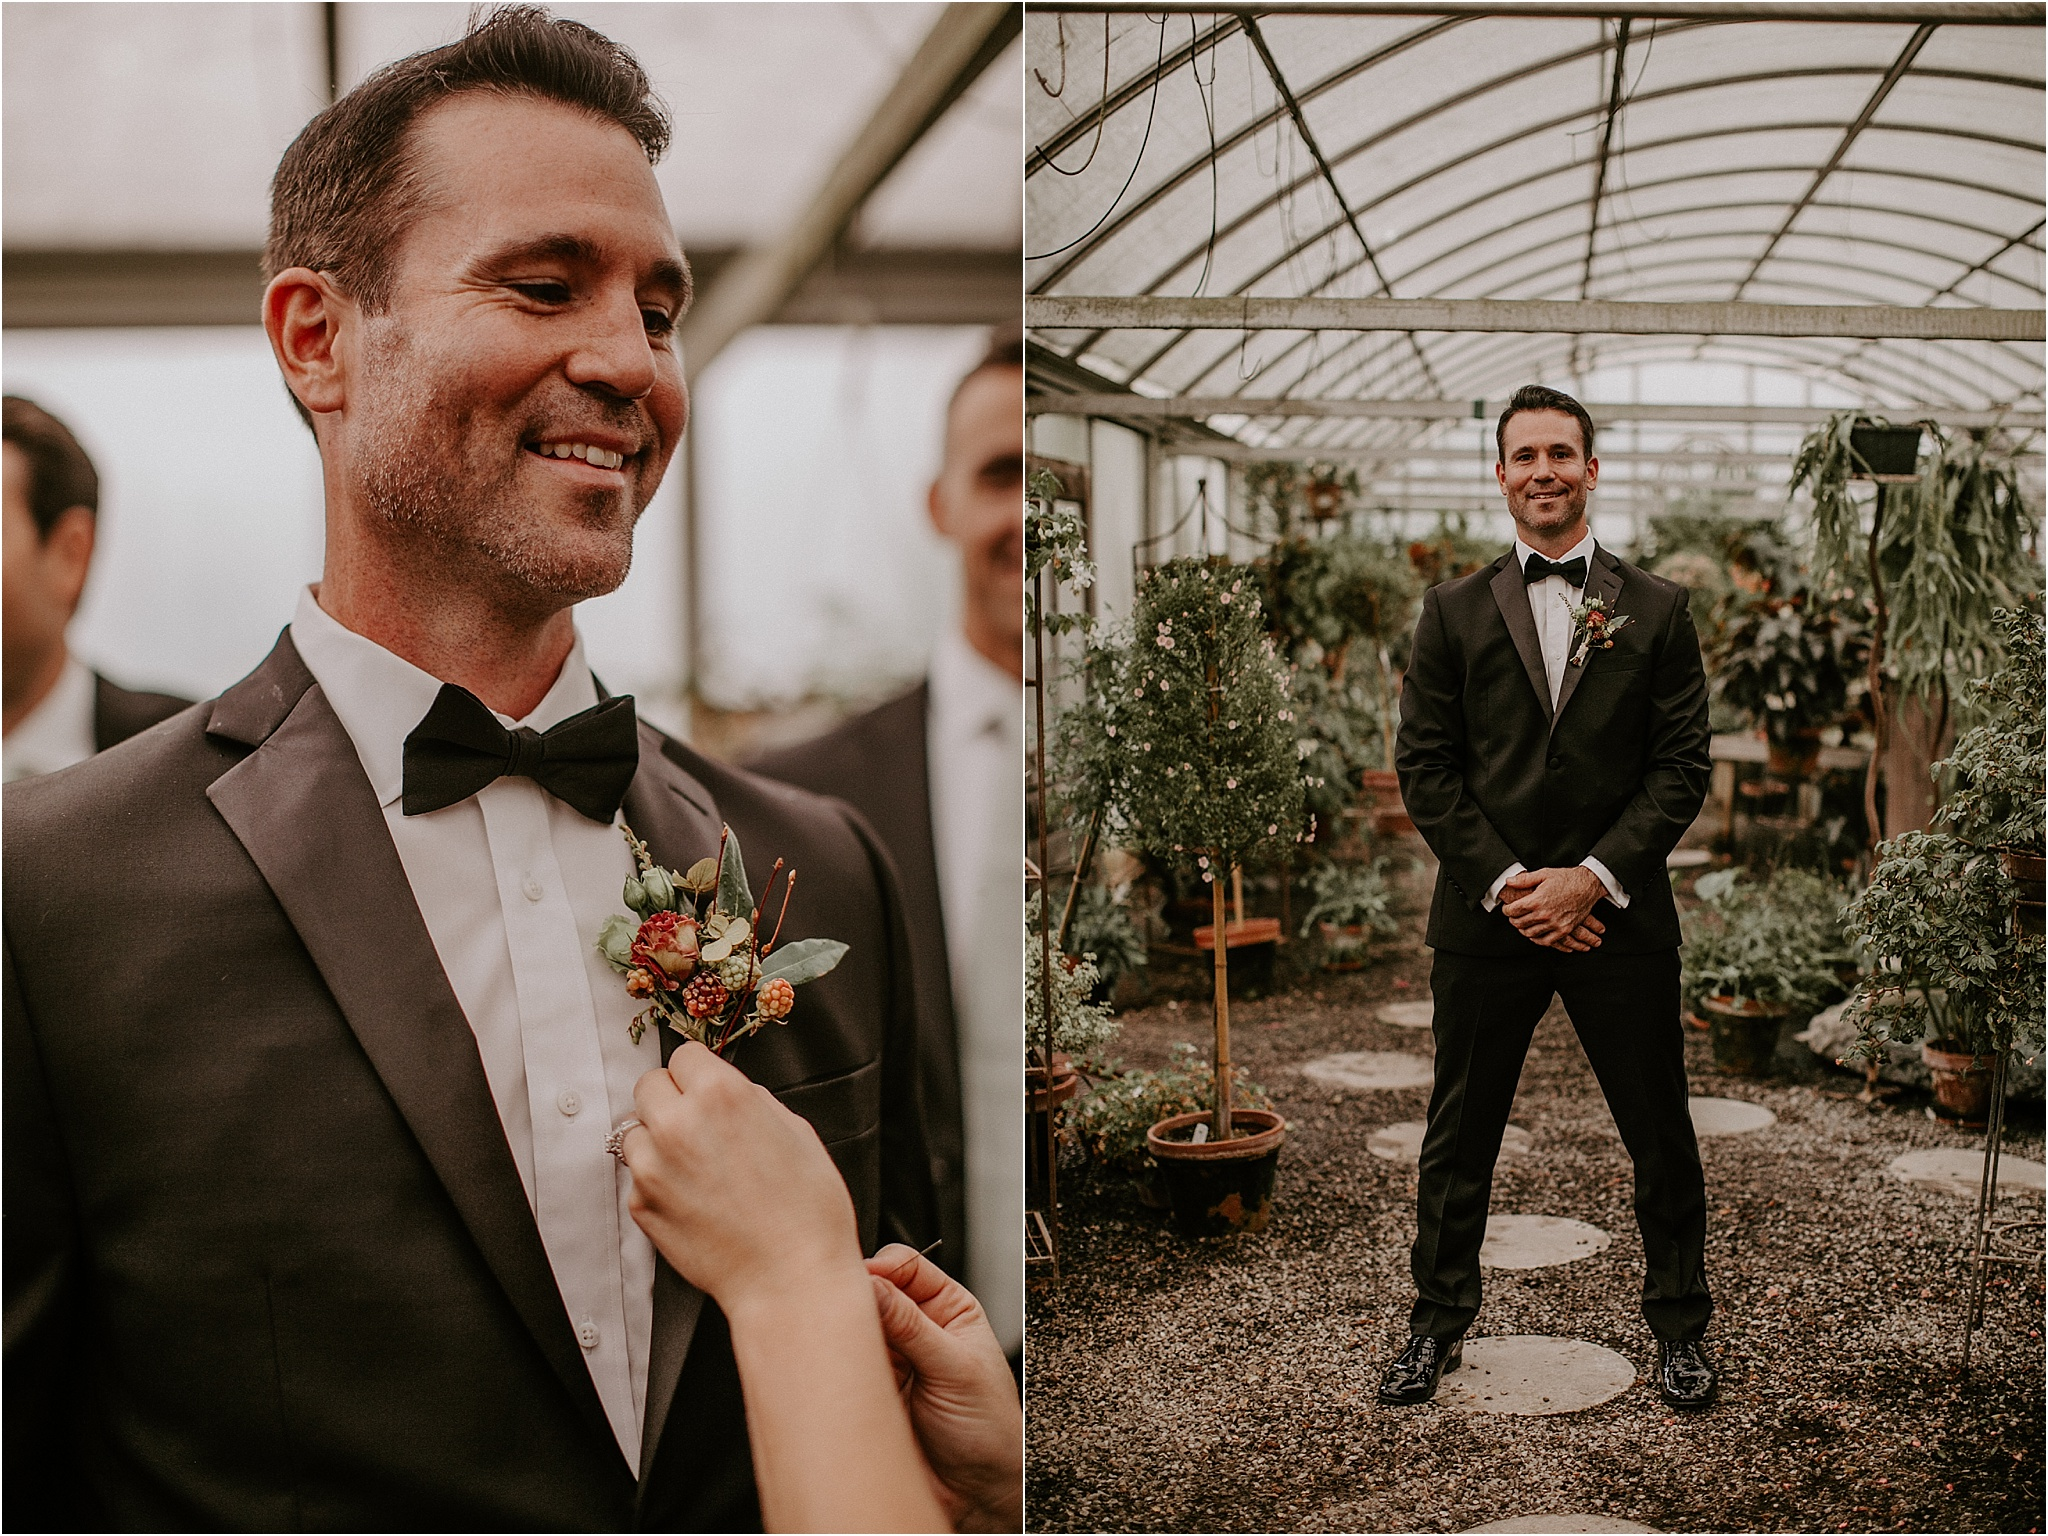 Sarah_Brookhart_Hortulus_Farm_Garden_and_Nursey_Wedding_Photographer_0021.jpg